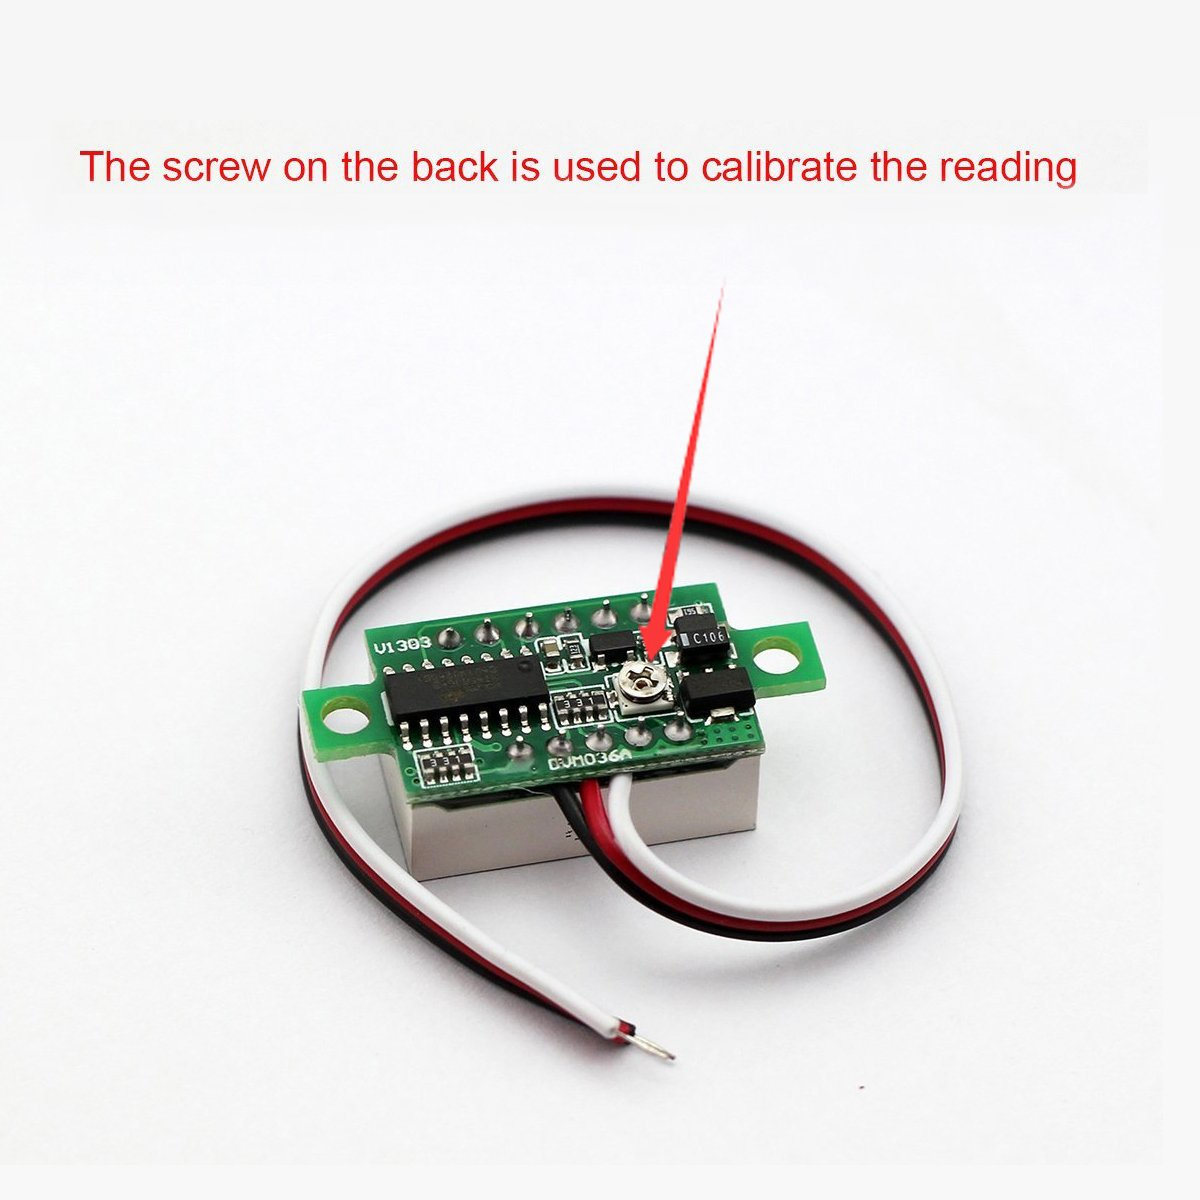 Bayite 3 Wire 036 Dc 030v Digital Voltmeter Gauge Tester Red Led The Accuracy Of This Schematic Is Limited Display Panel Mount Car Motorcycle Battery Monitor Volt Voltage Meter Pack 5